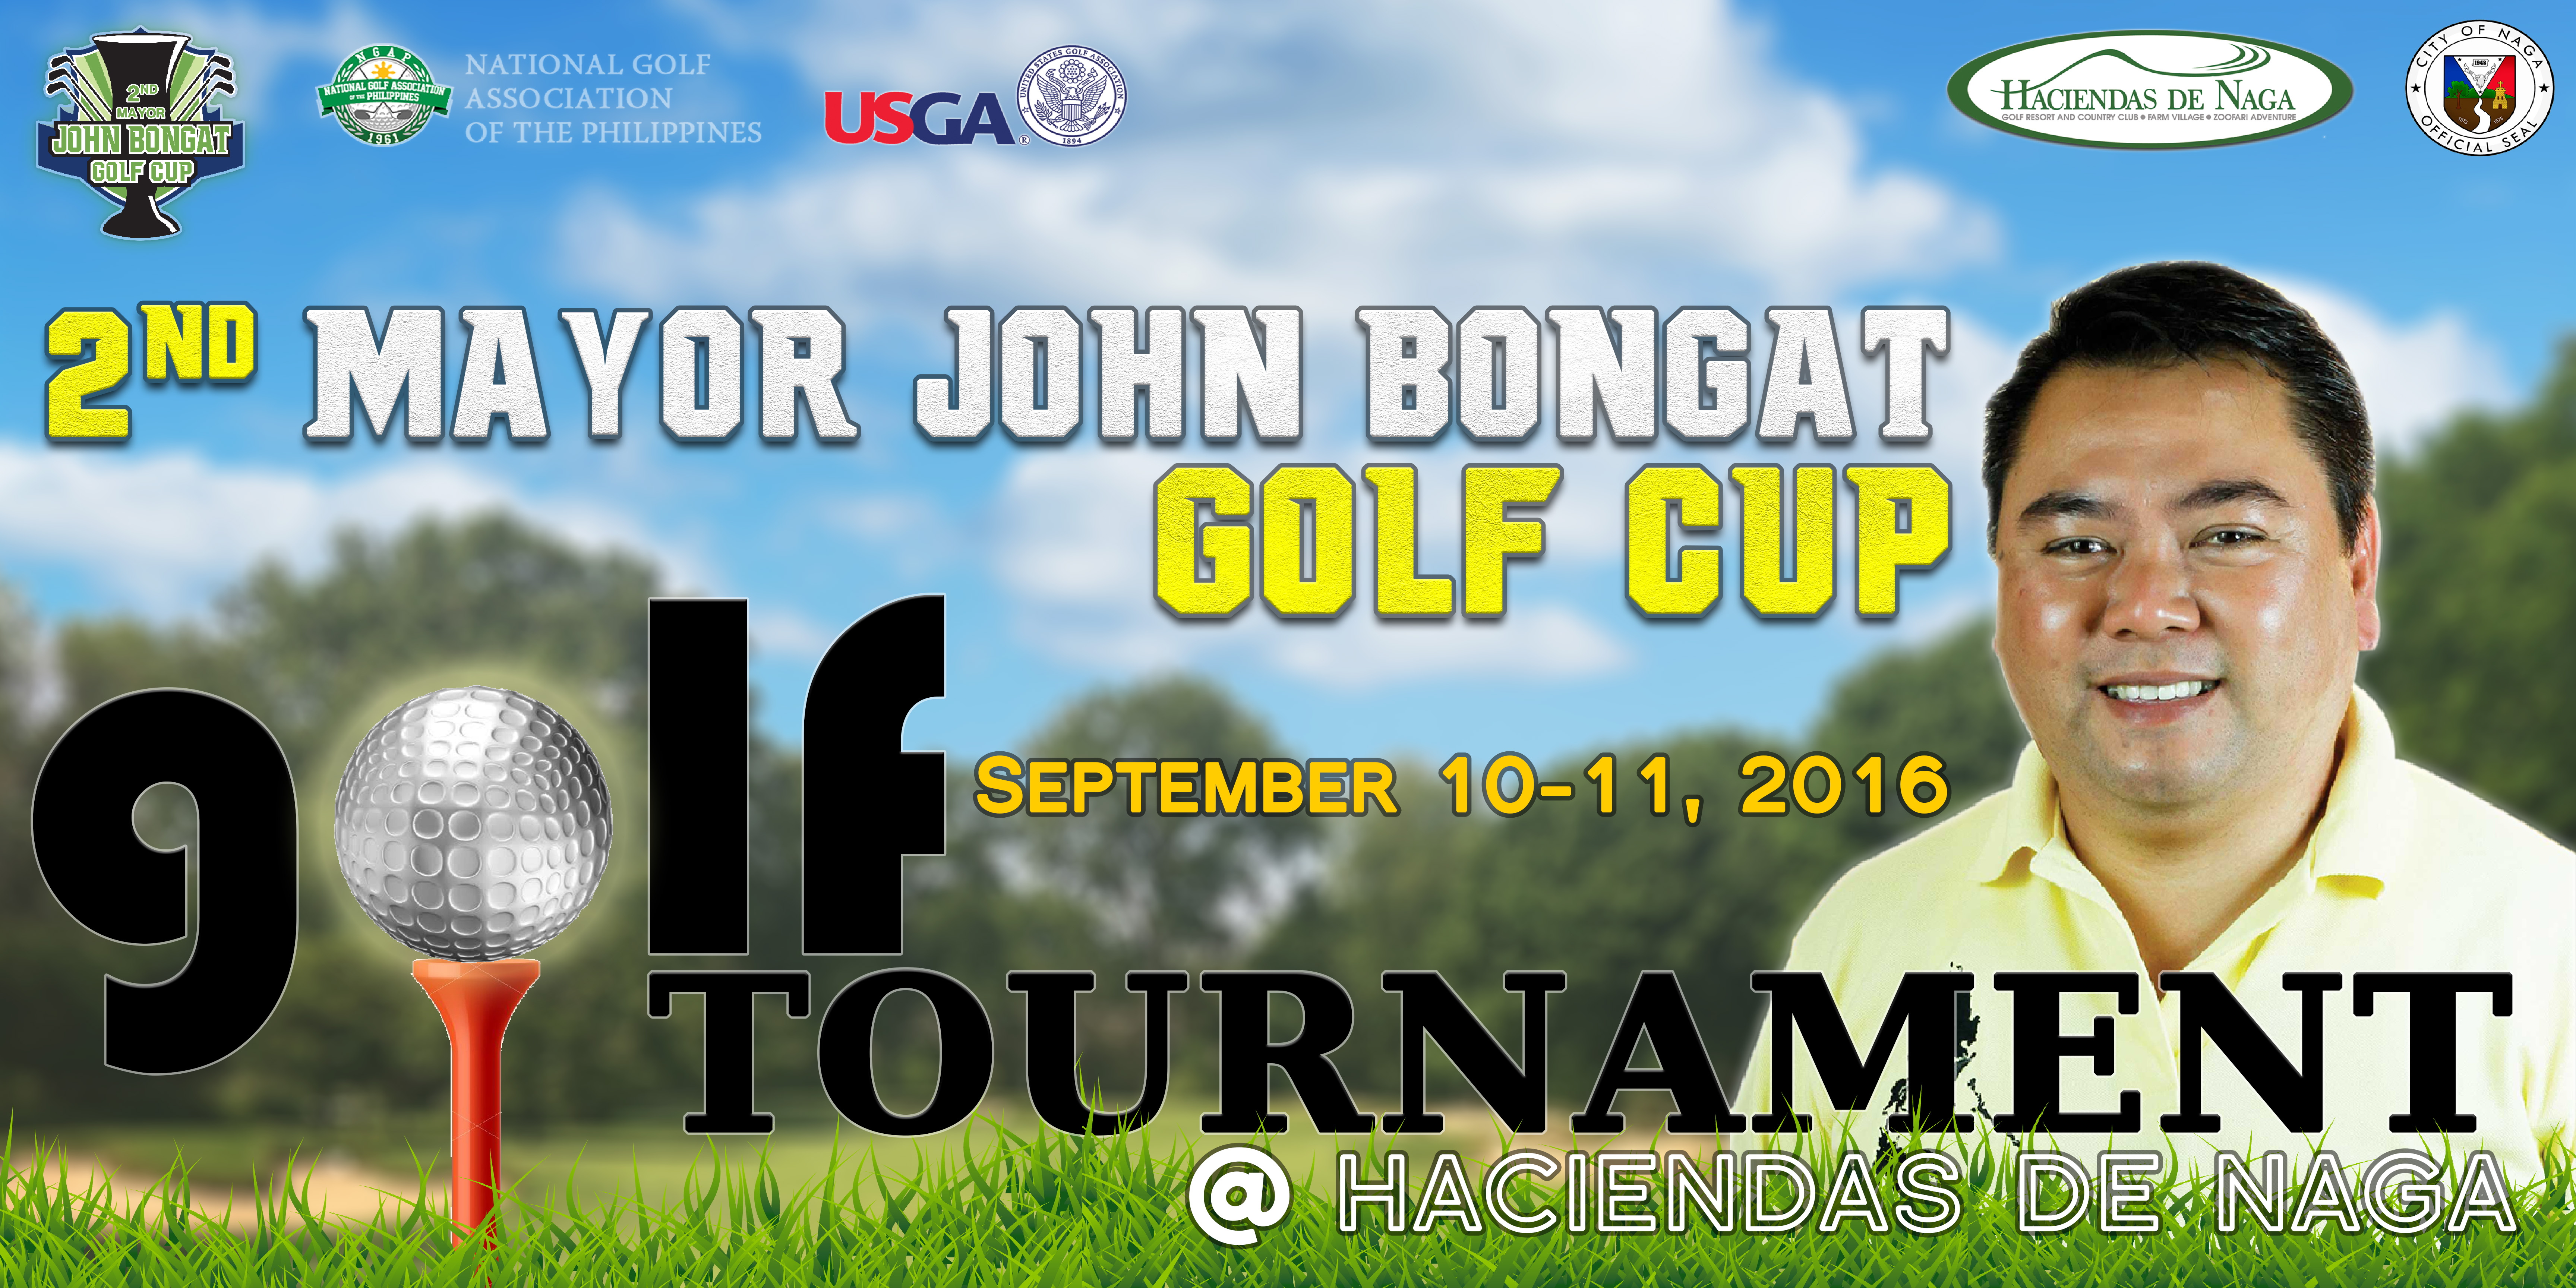 2nd Mayors Cup Golf Tournament Haciendas De Naga Resort Naga city